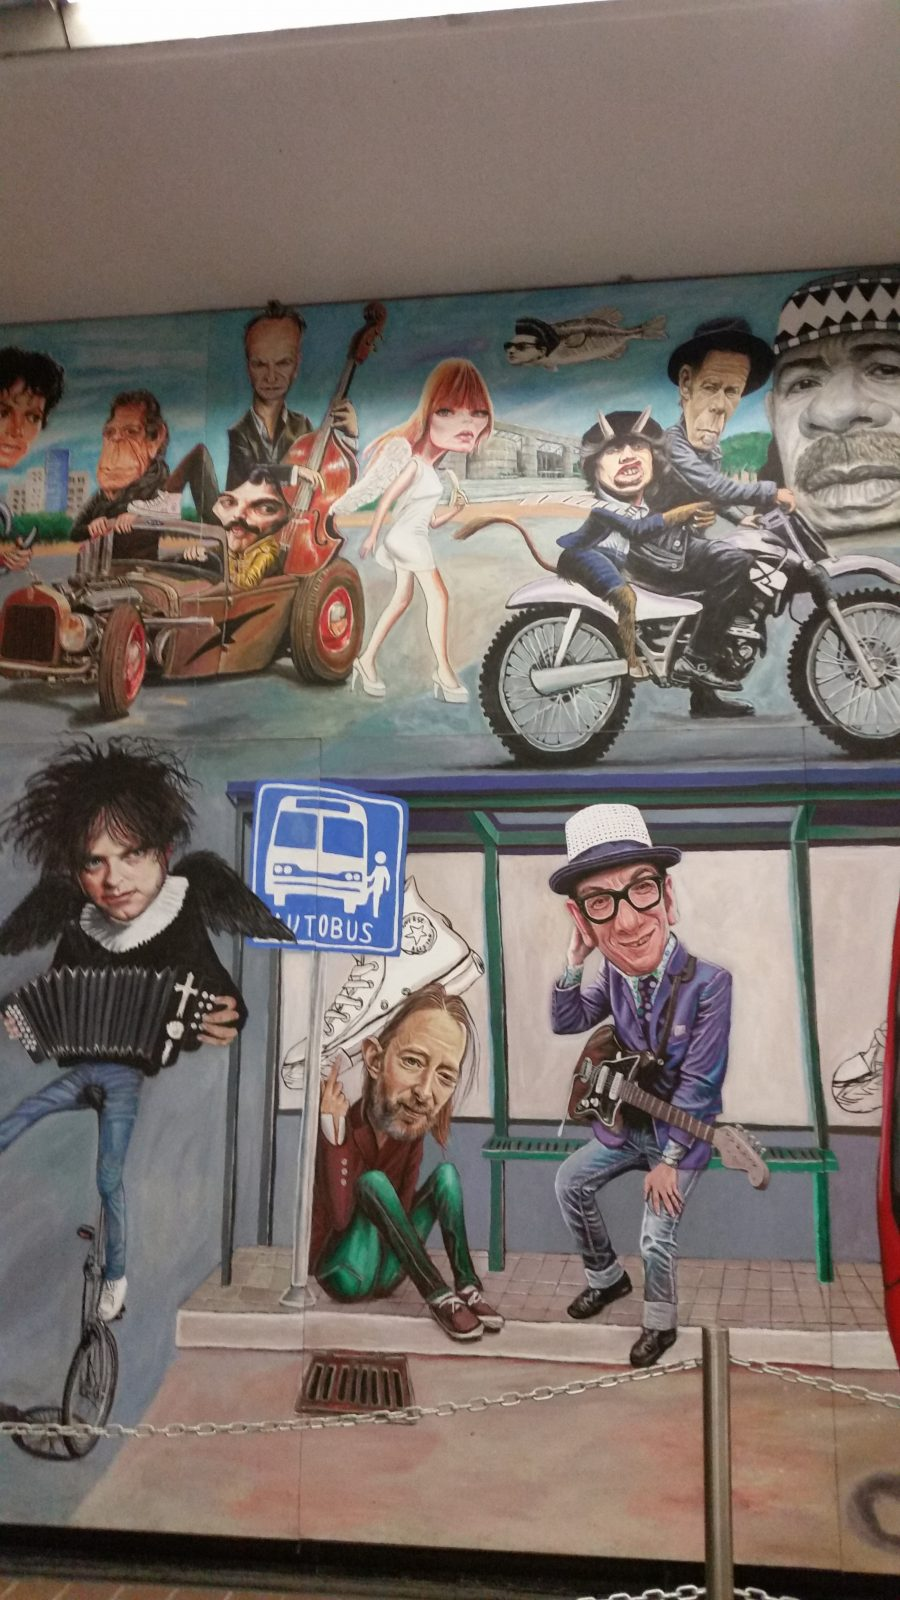 A view of the famous rock 'n roll murals in Auditorio Metro Station in Mexico City painted by artist Jorge Manjarrez showing Robert Smith from The Cure and Elvis Costello.